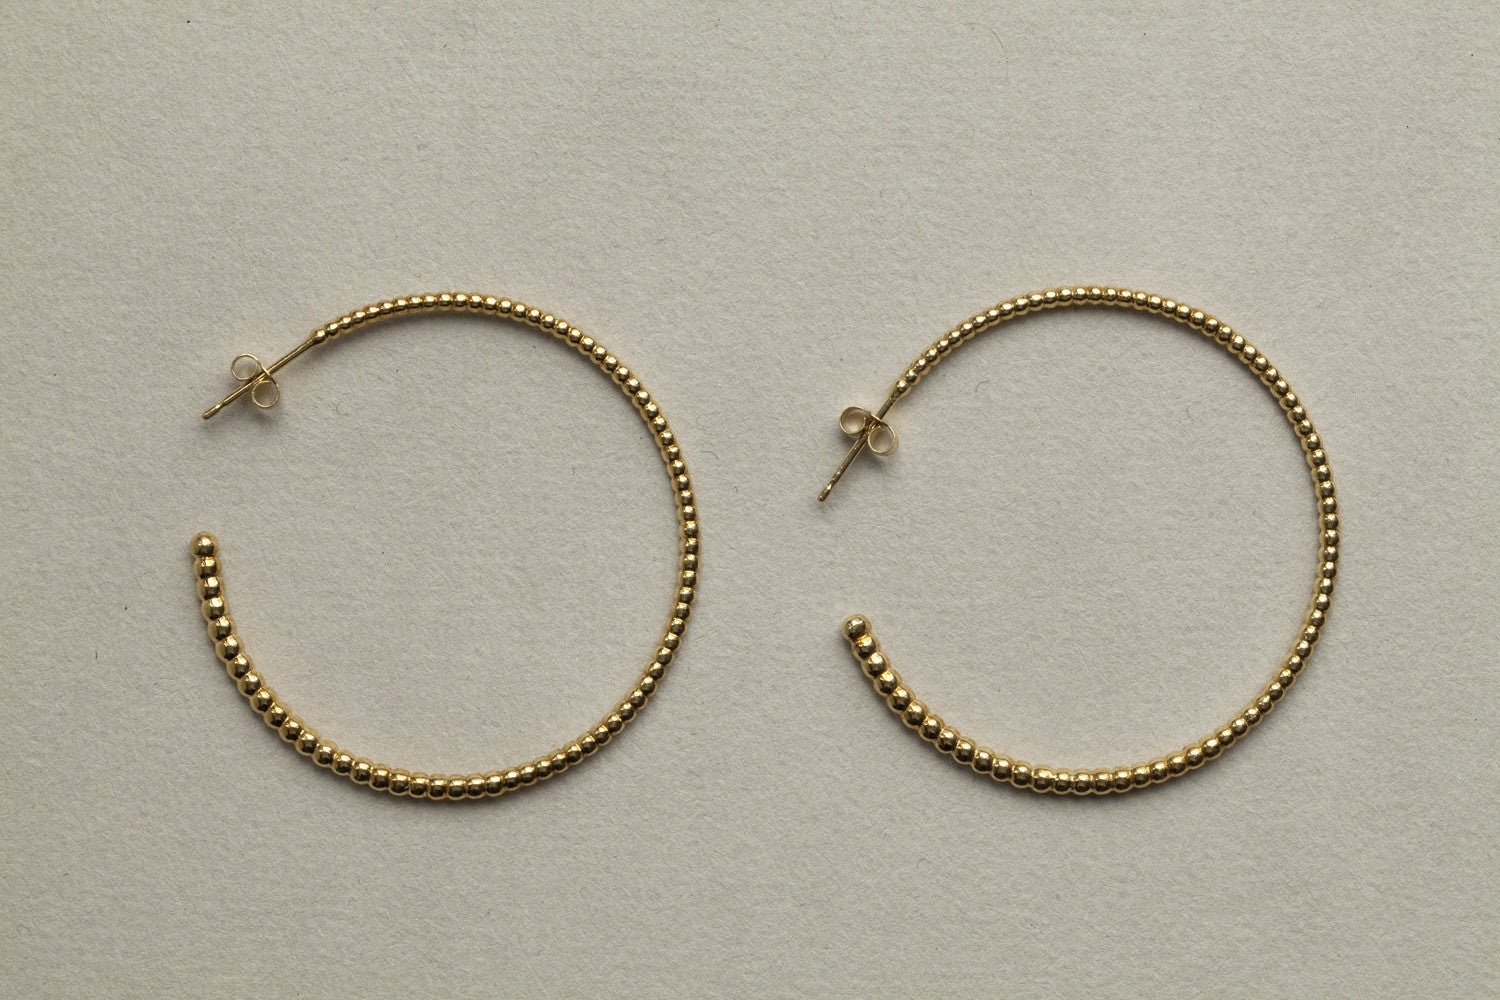 Laura Gravestock's original and best selling large hoops